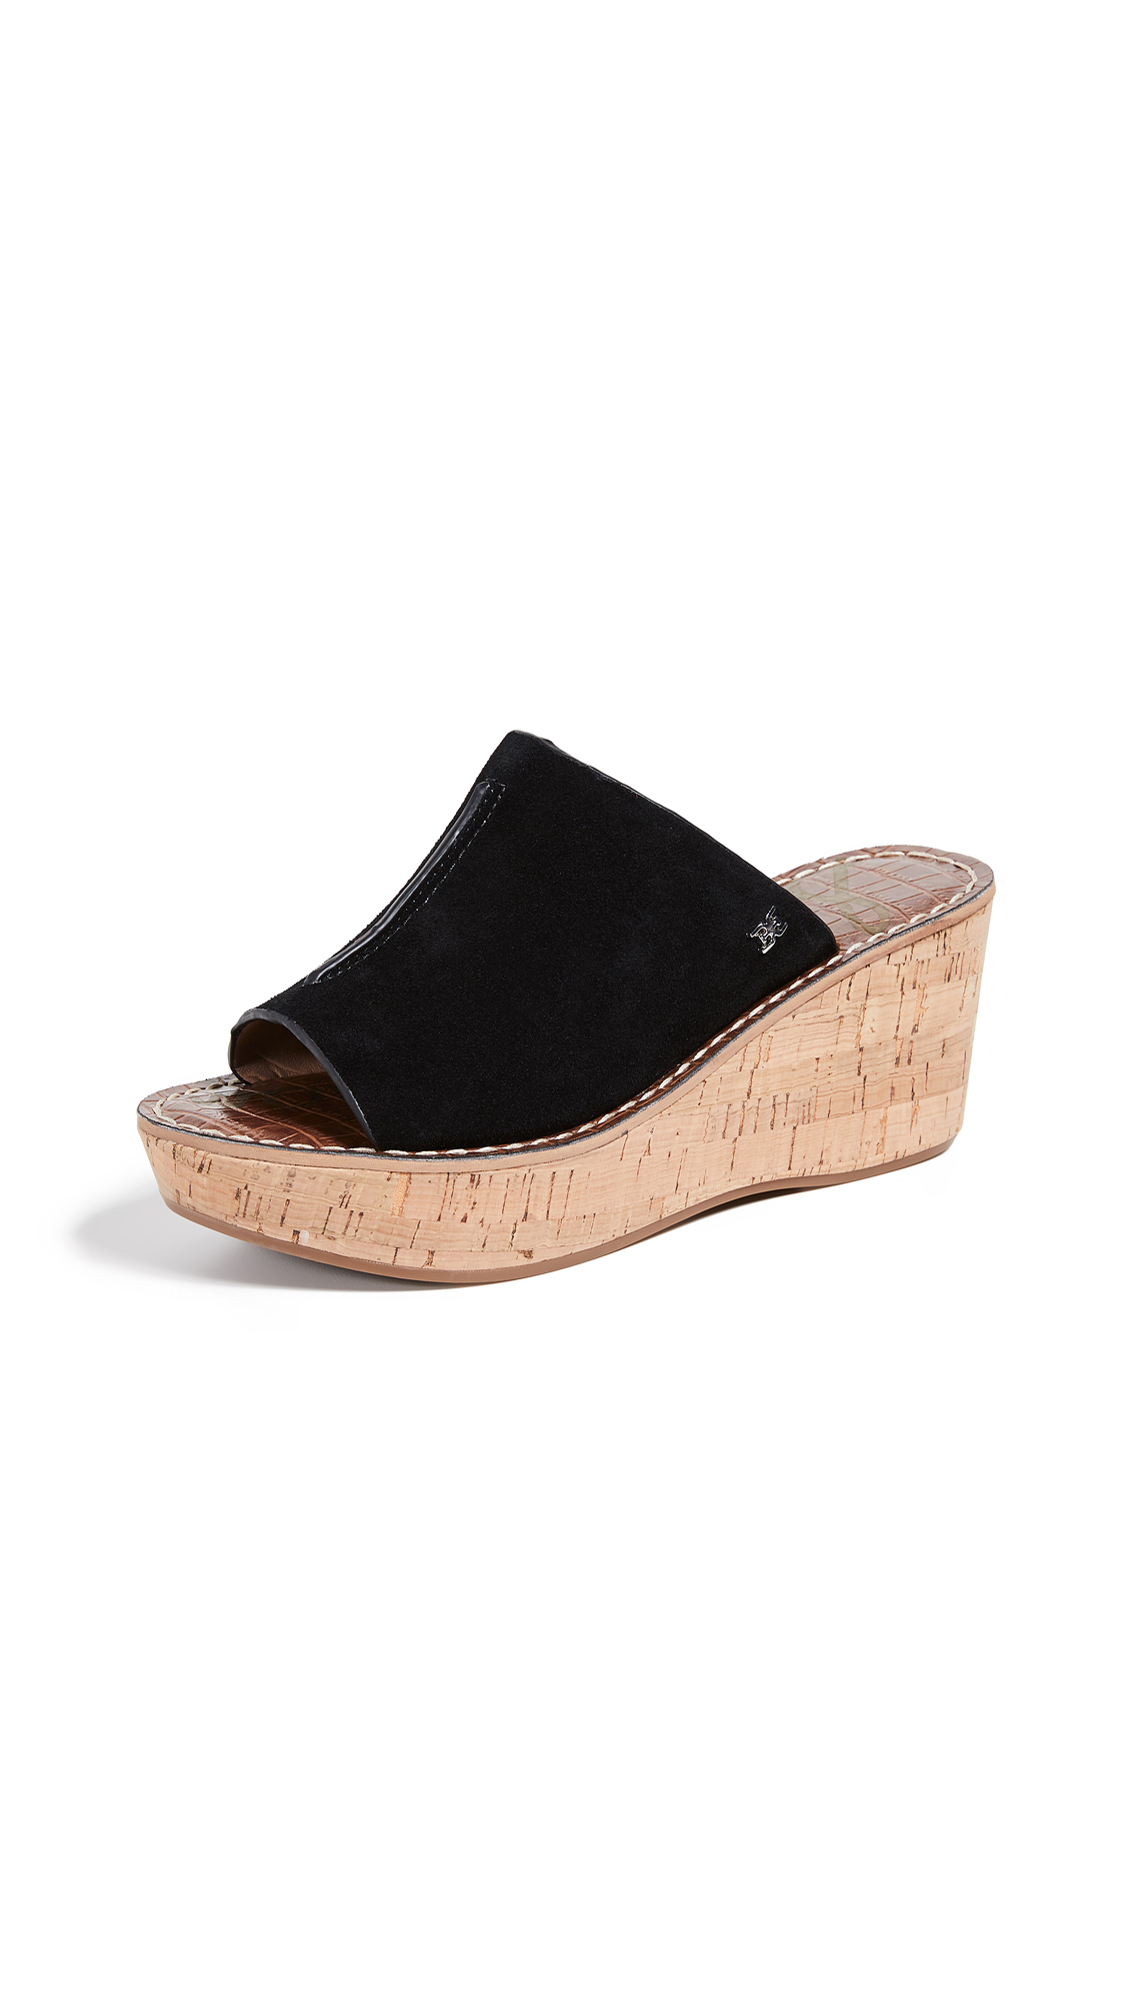 Sam Edelman Ranger Slides - Black